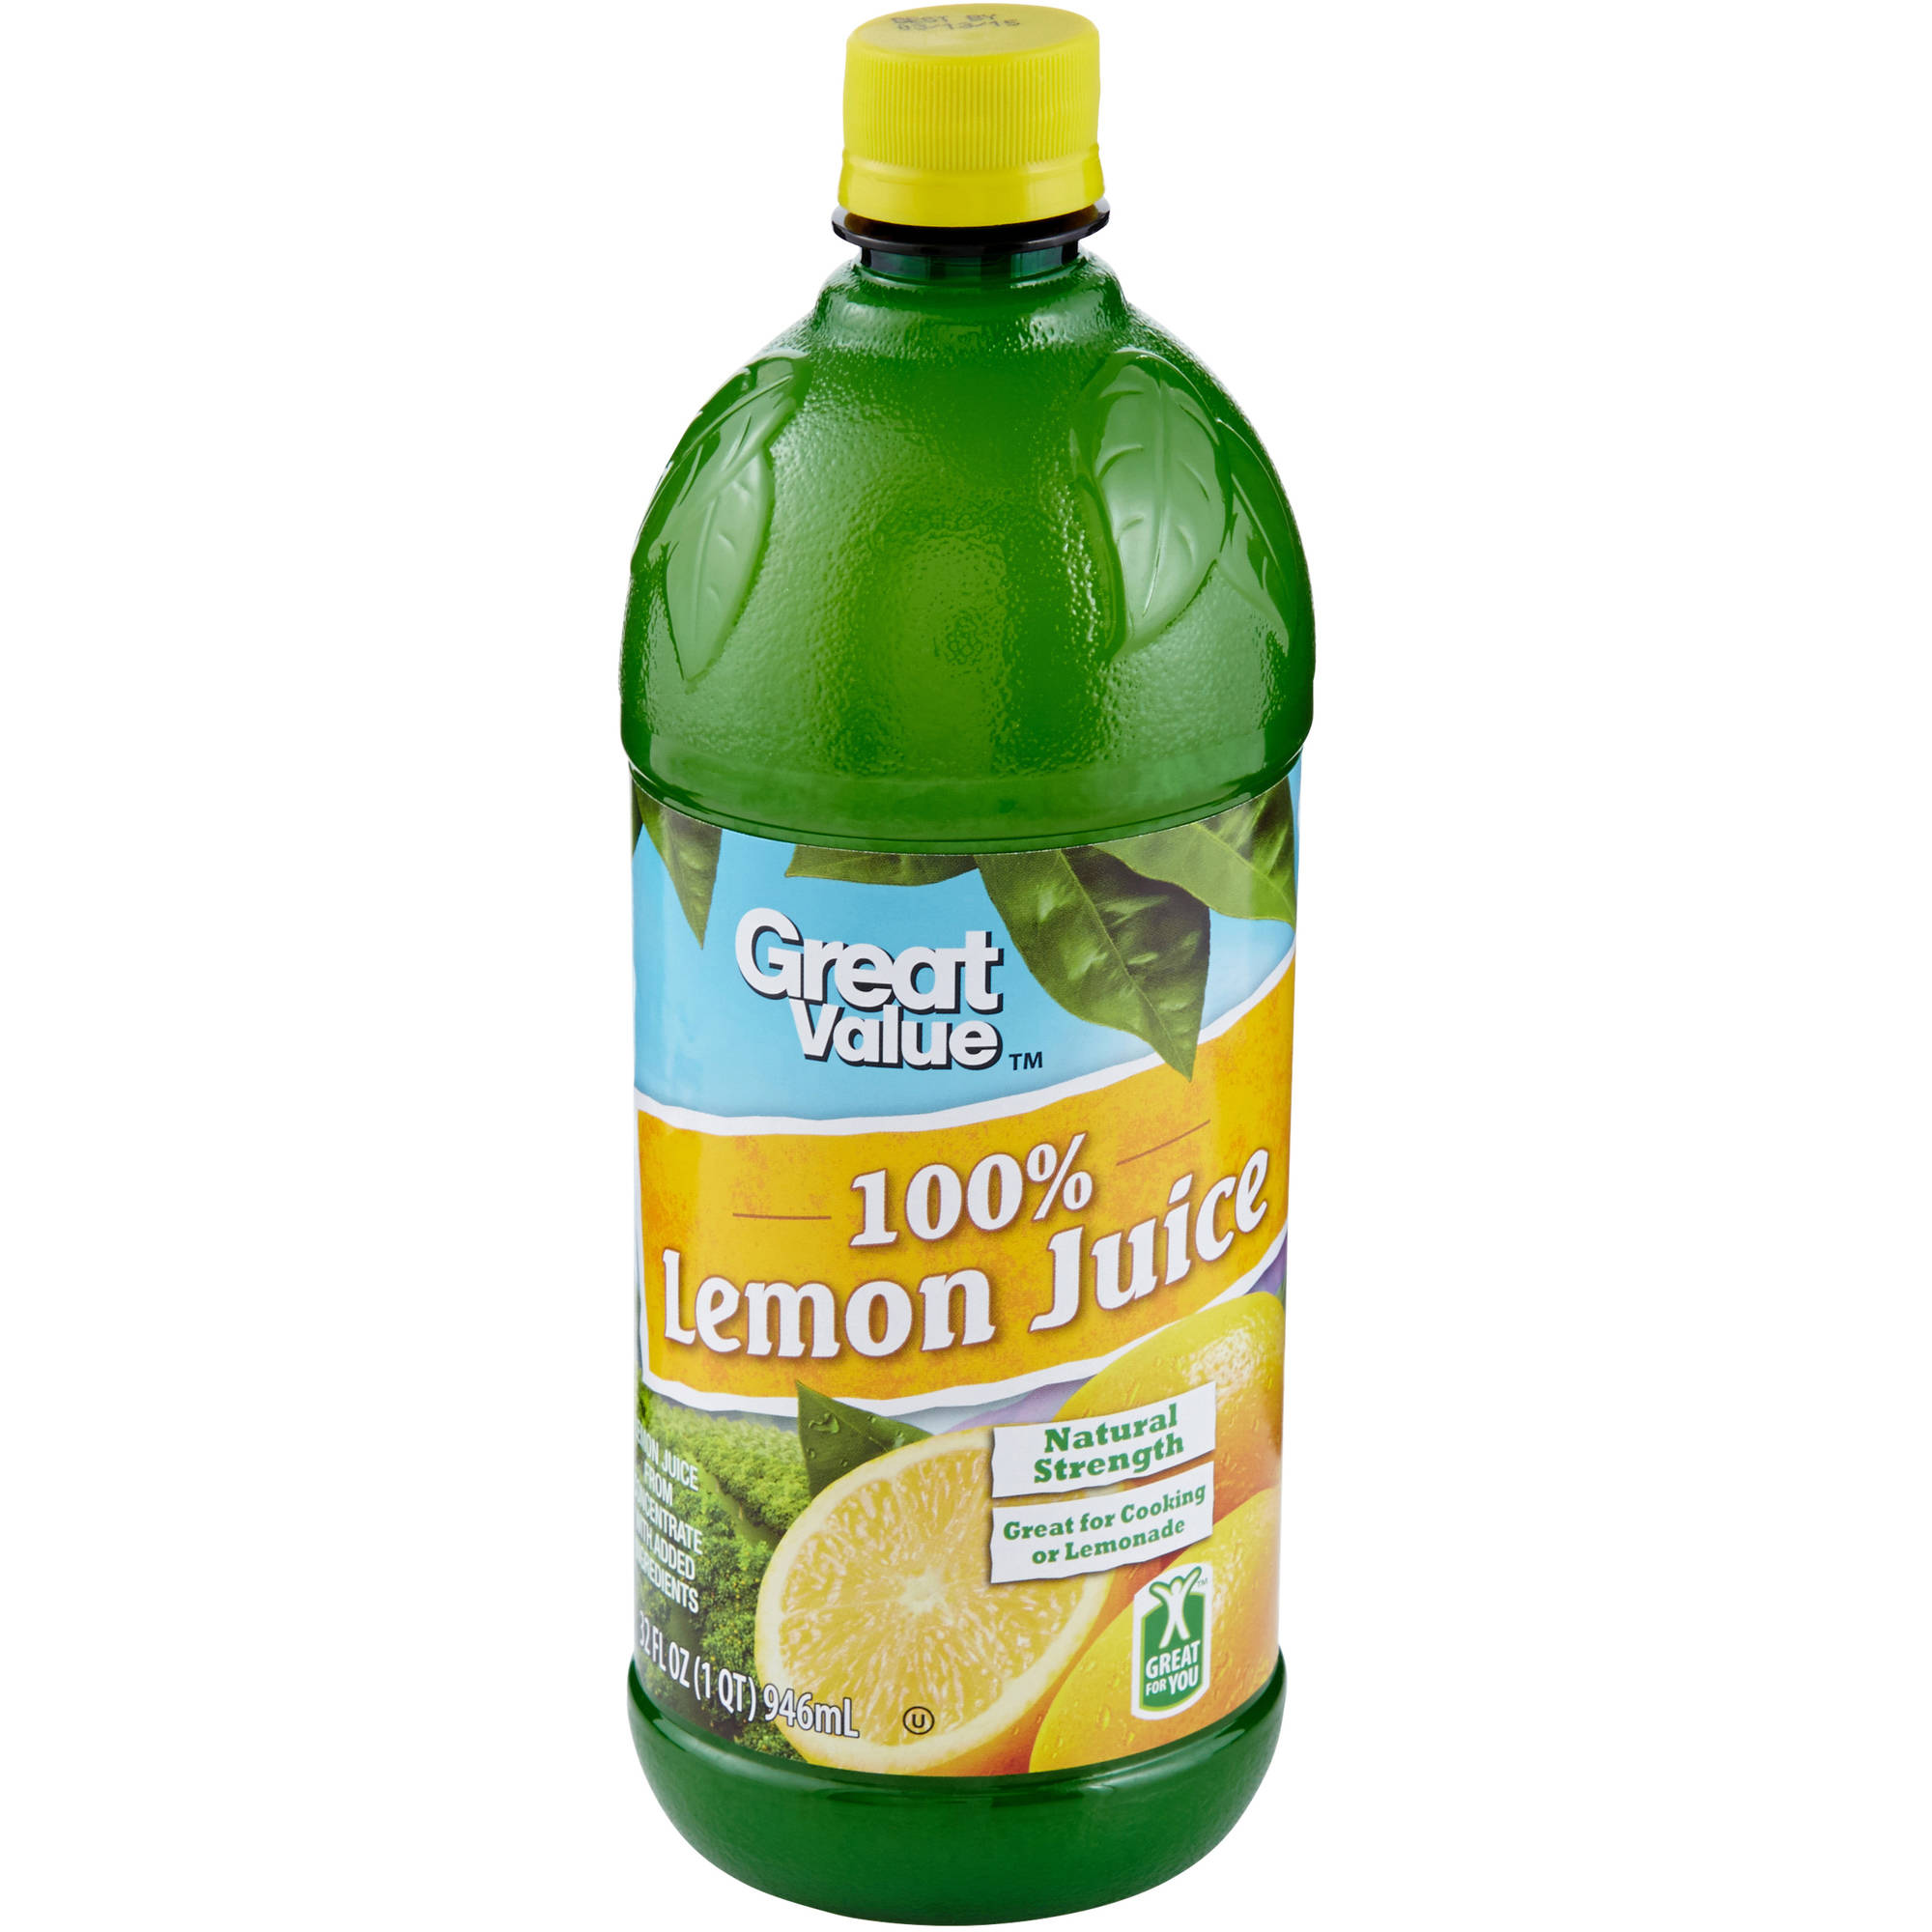 Great Value 100% Lemon Juice, 32 oz